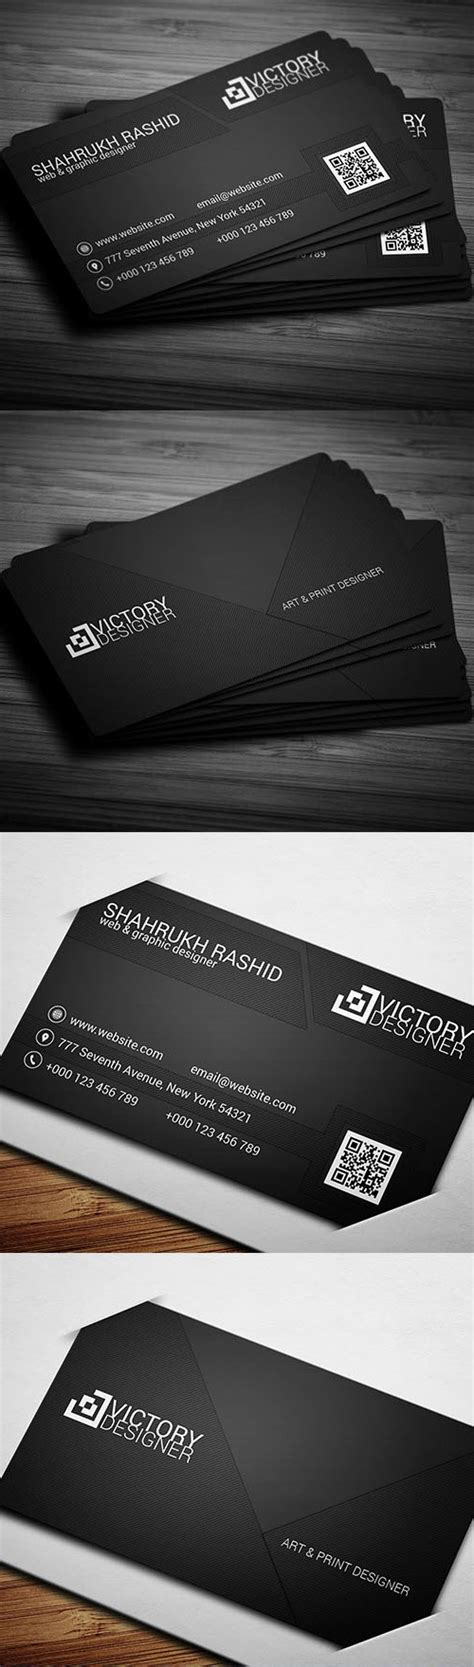 high quality business cards templates 15 high quality business cards psd template graphics